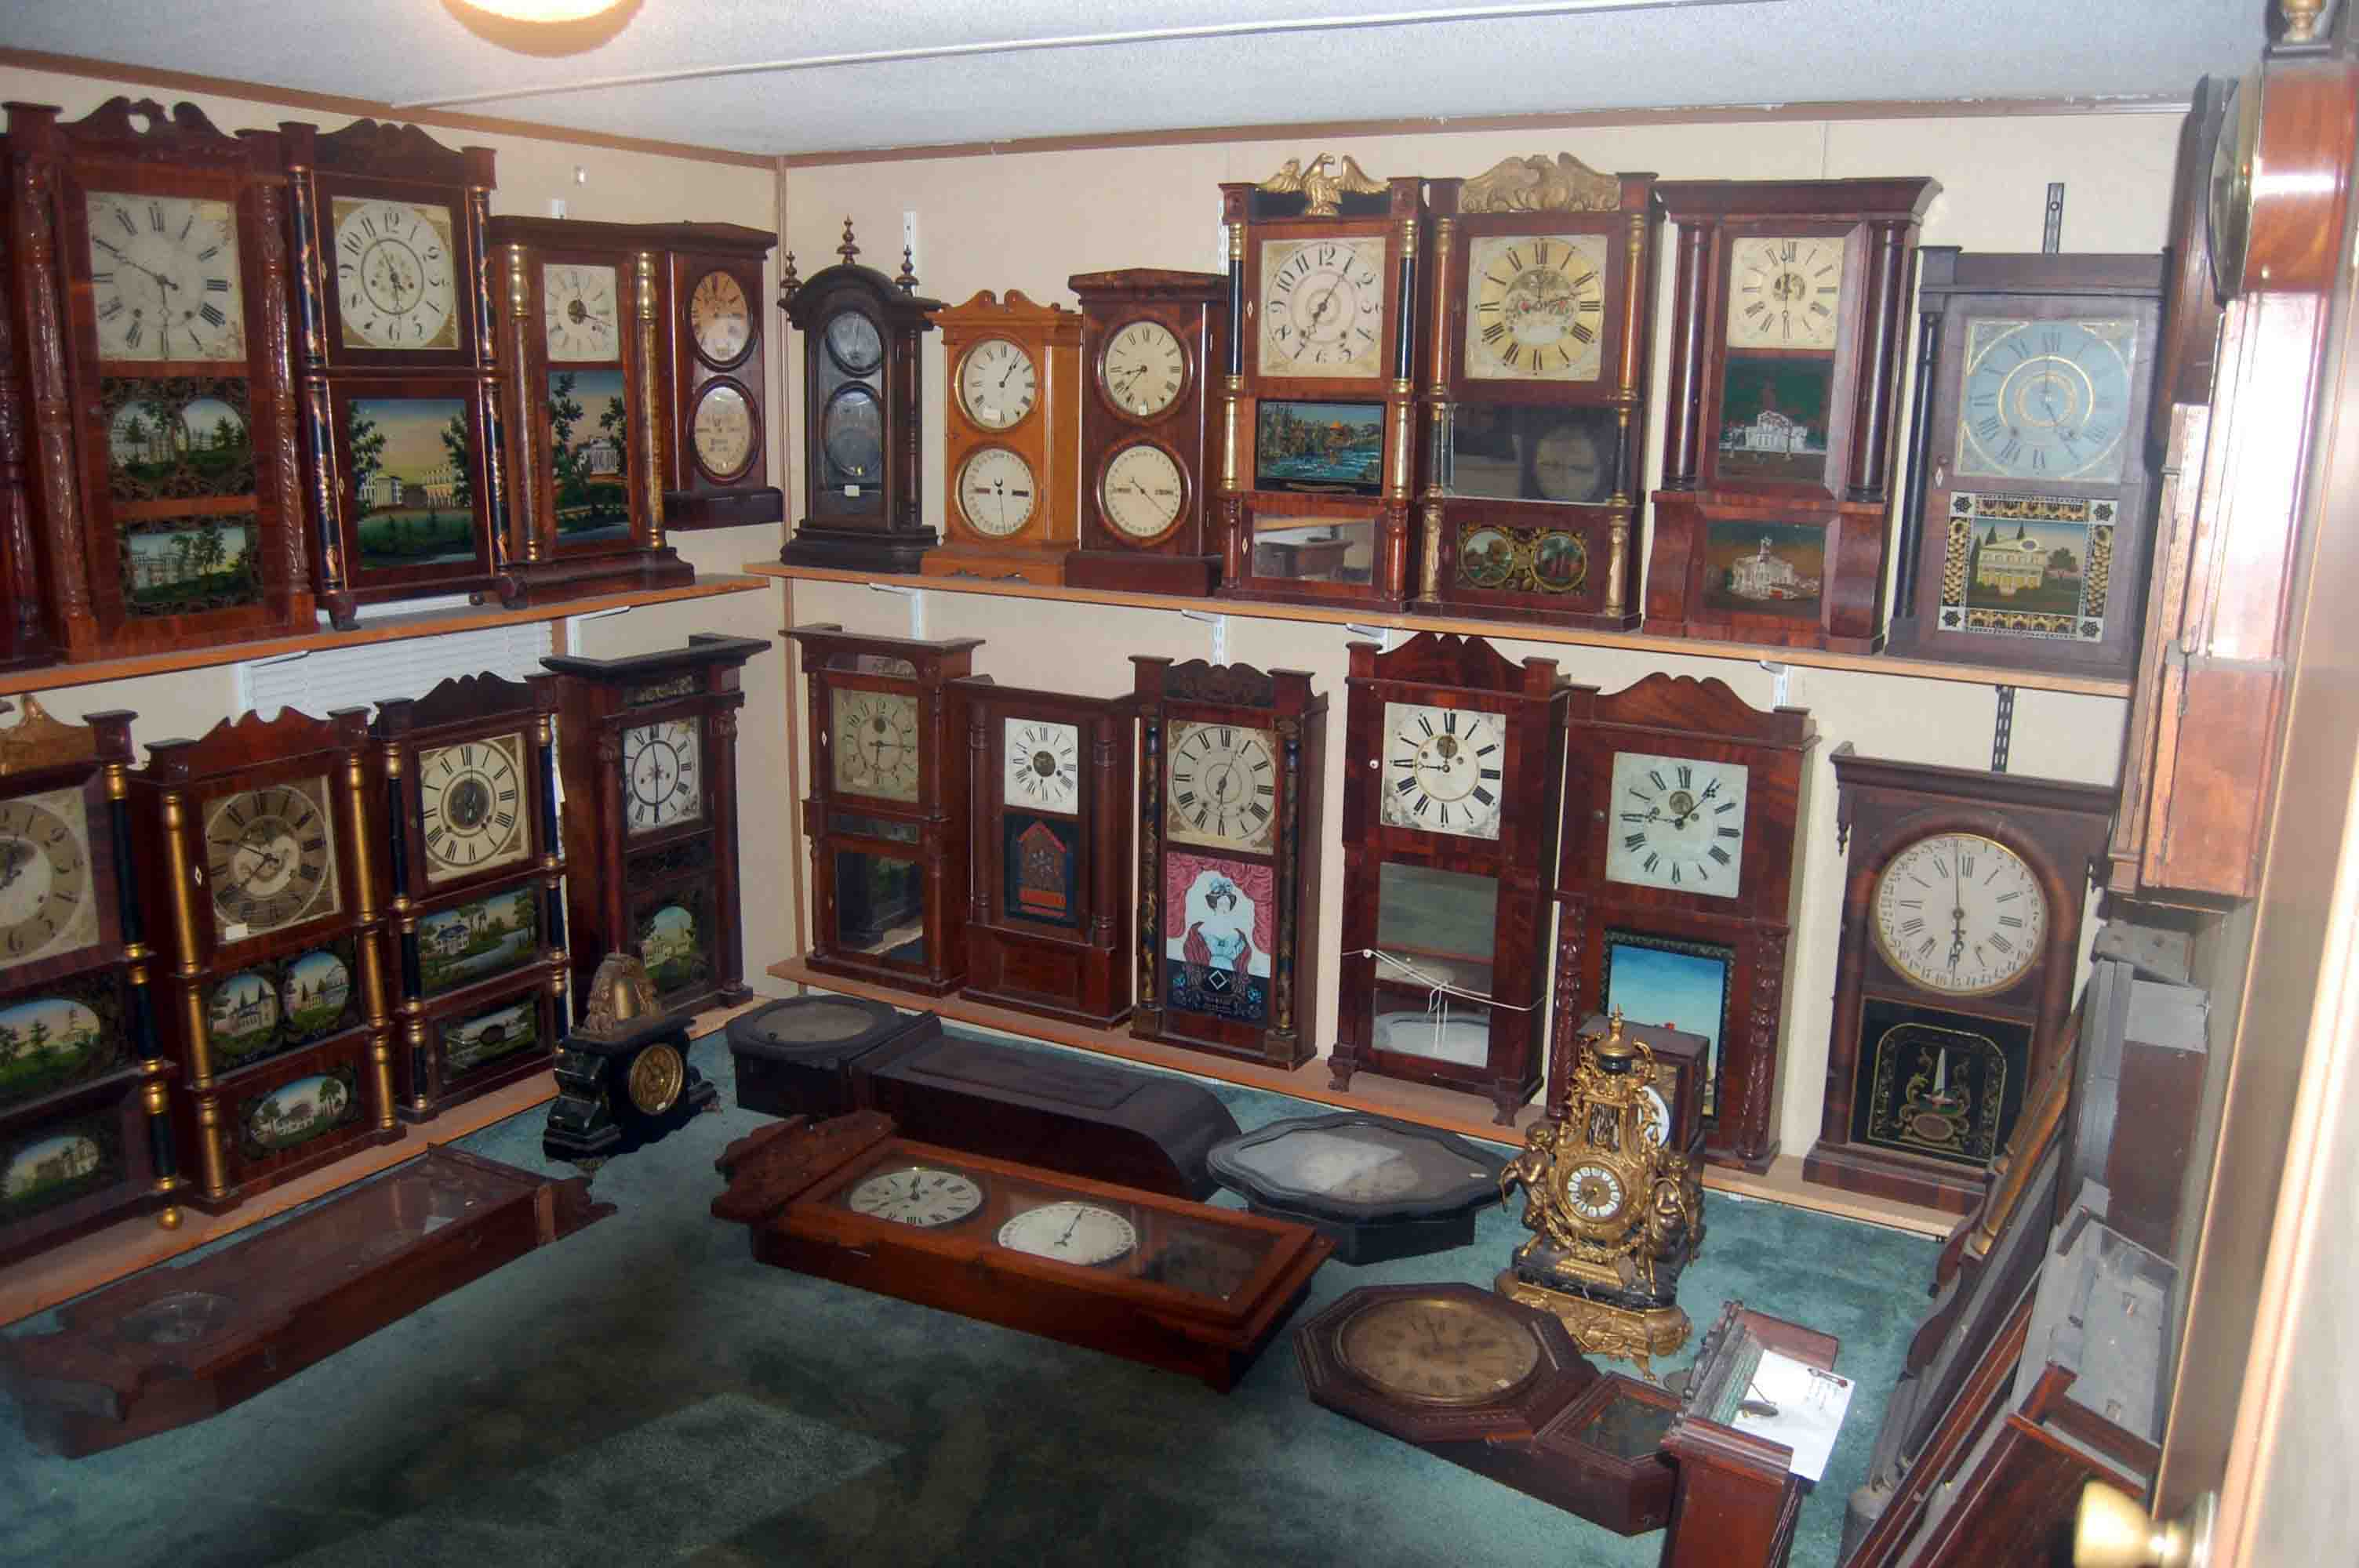 Mackeys antique clock repair repairing antique modern clock clock repair special for 9500 plus parts if any are needed we will overhaul most time strike wall or mantel antique or modern pendulum clock amipublicfo Choice Image